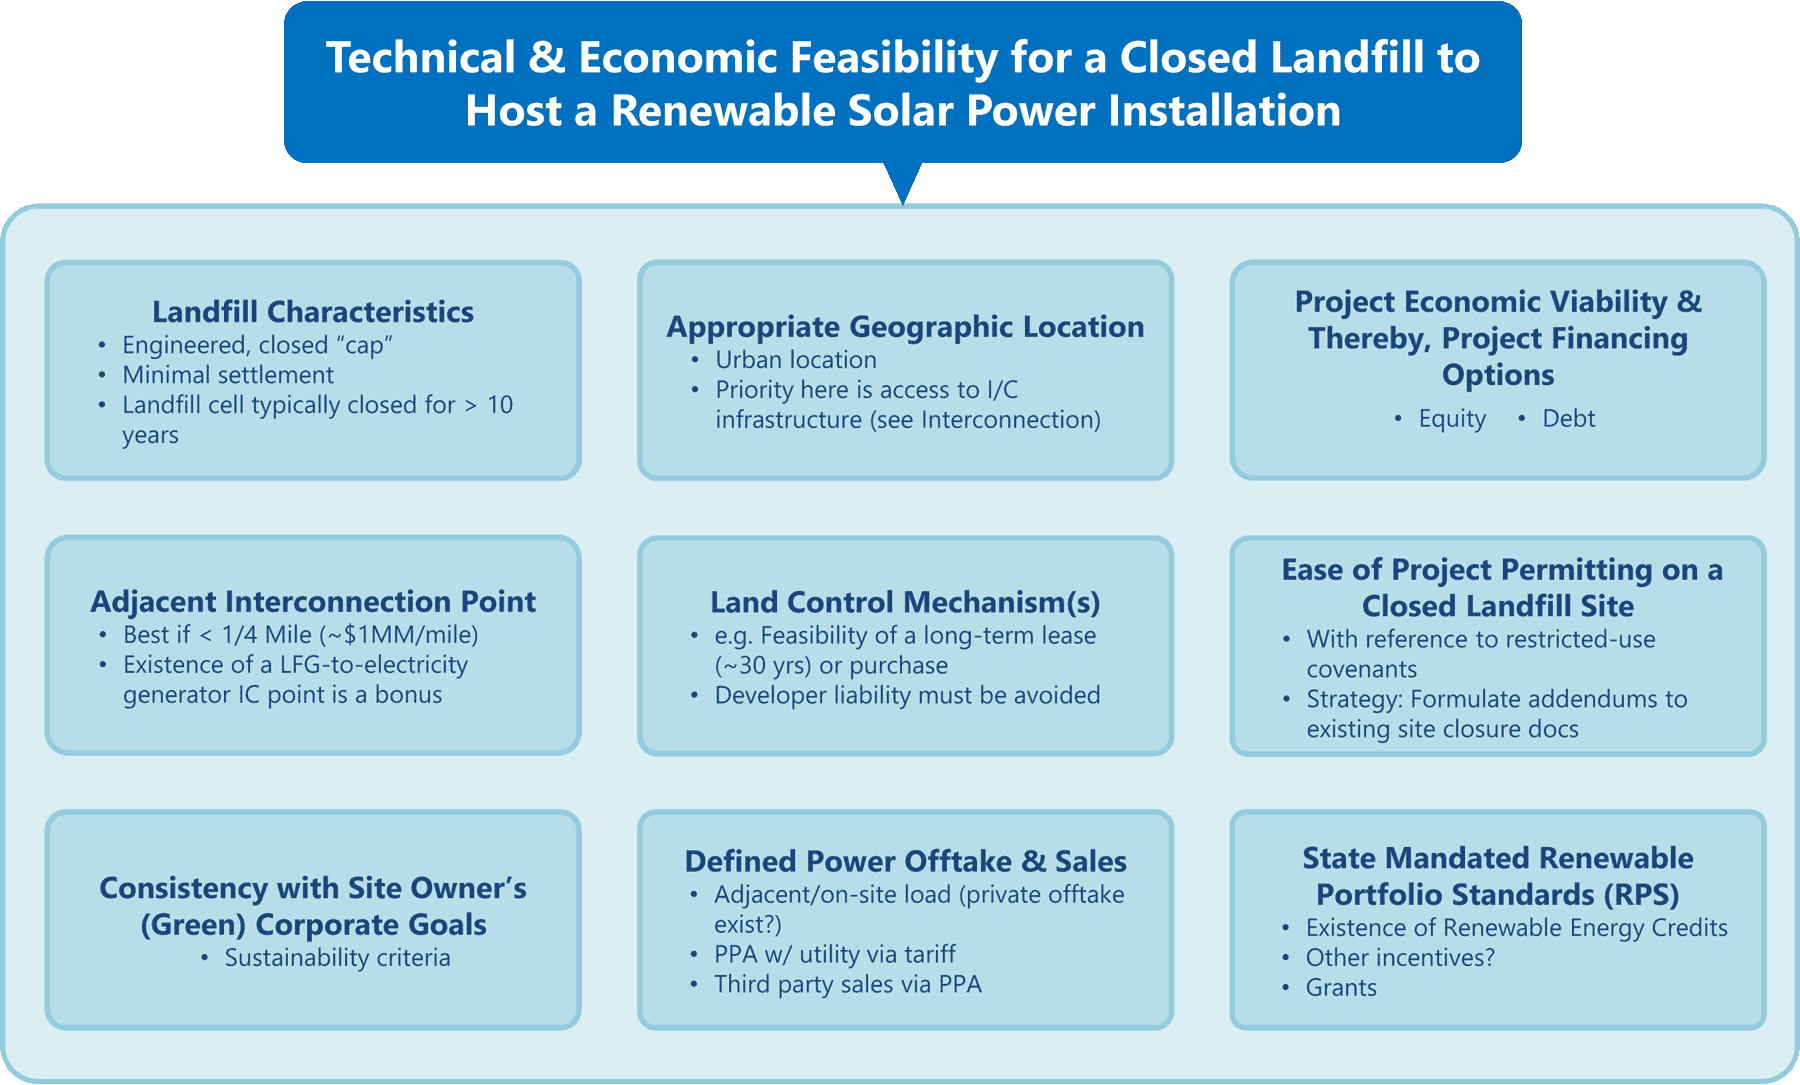 Key criteria for siting PV solar power installations on landfills and brownfield sites